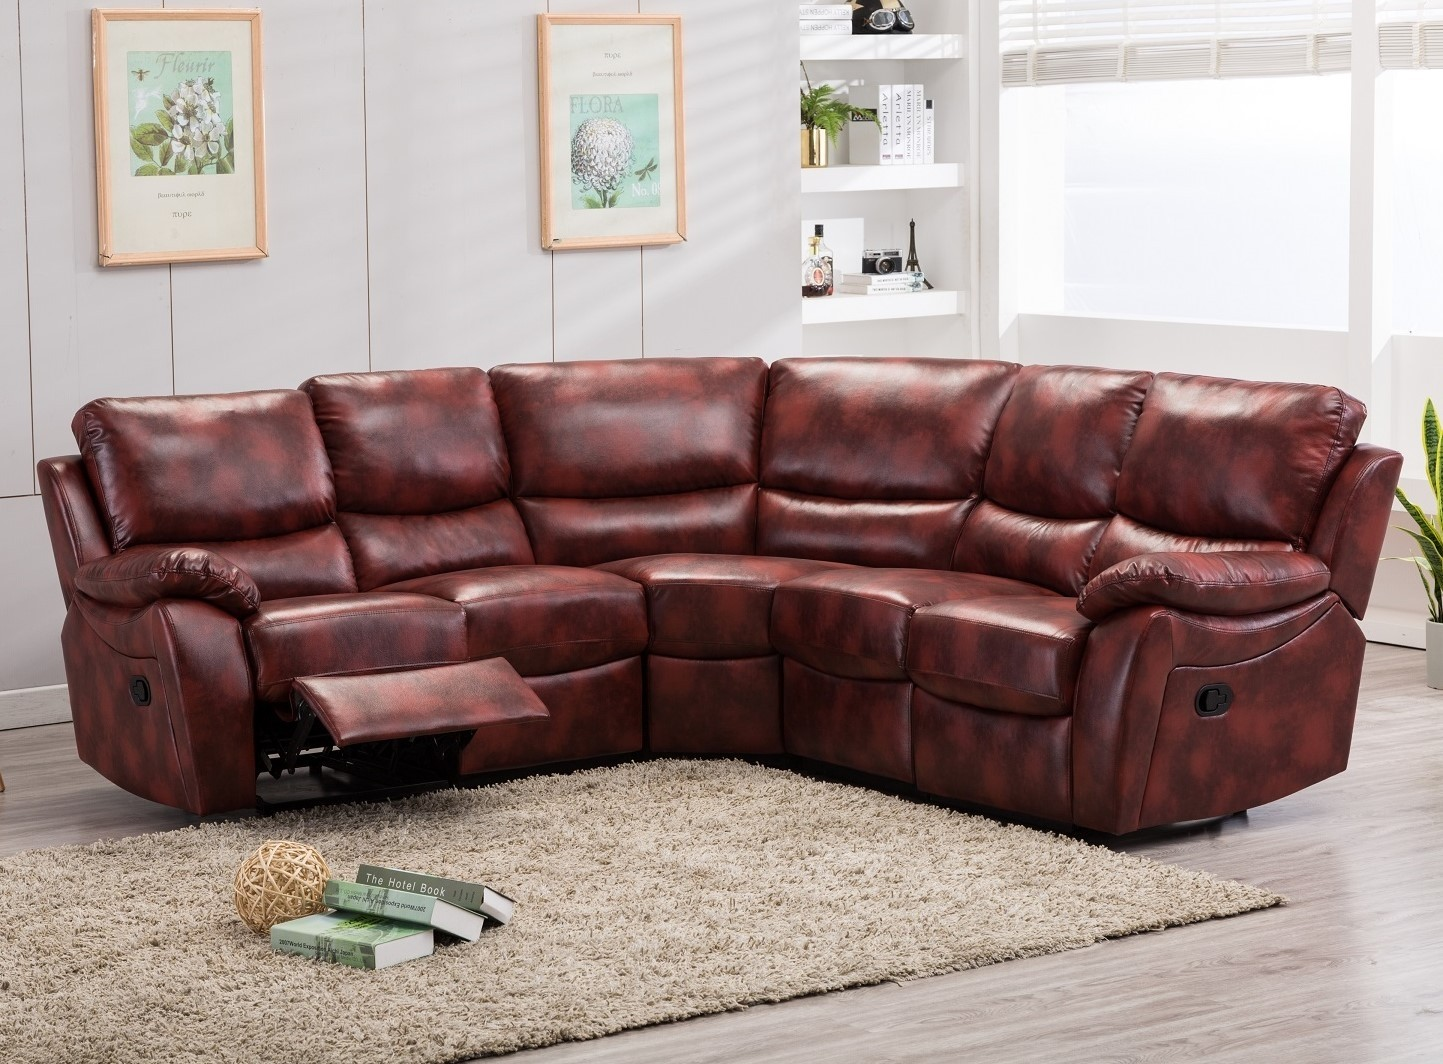 Ludlow Reclining Corner Sofa Abreo Home Furniture